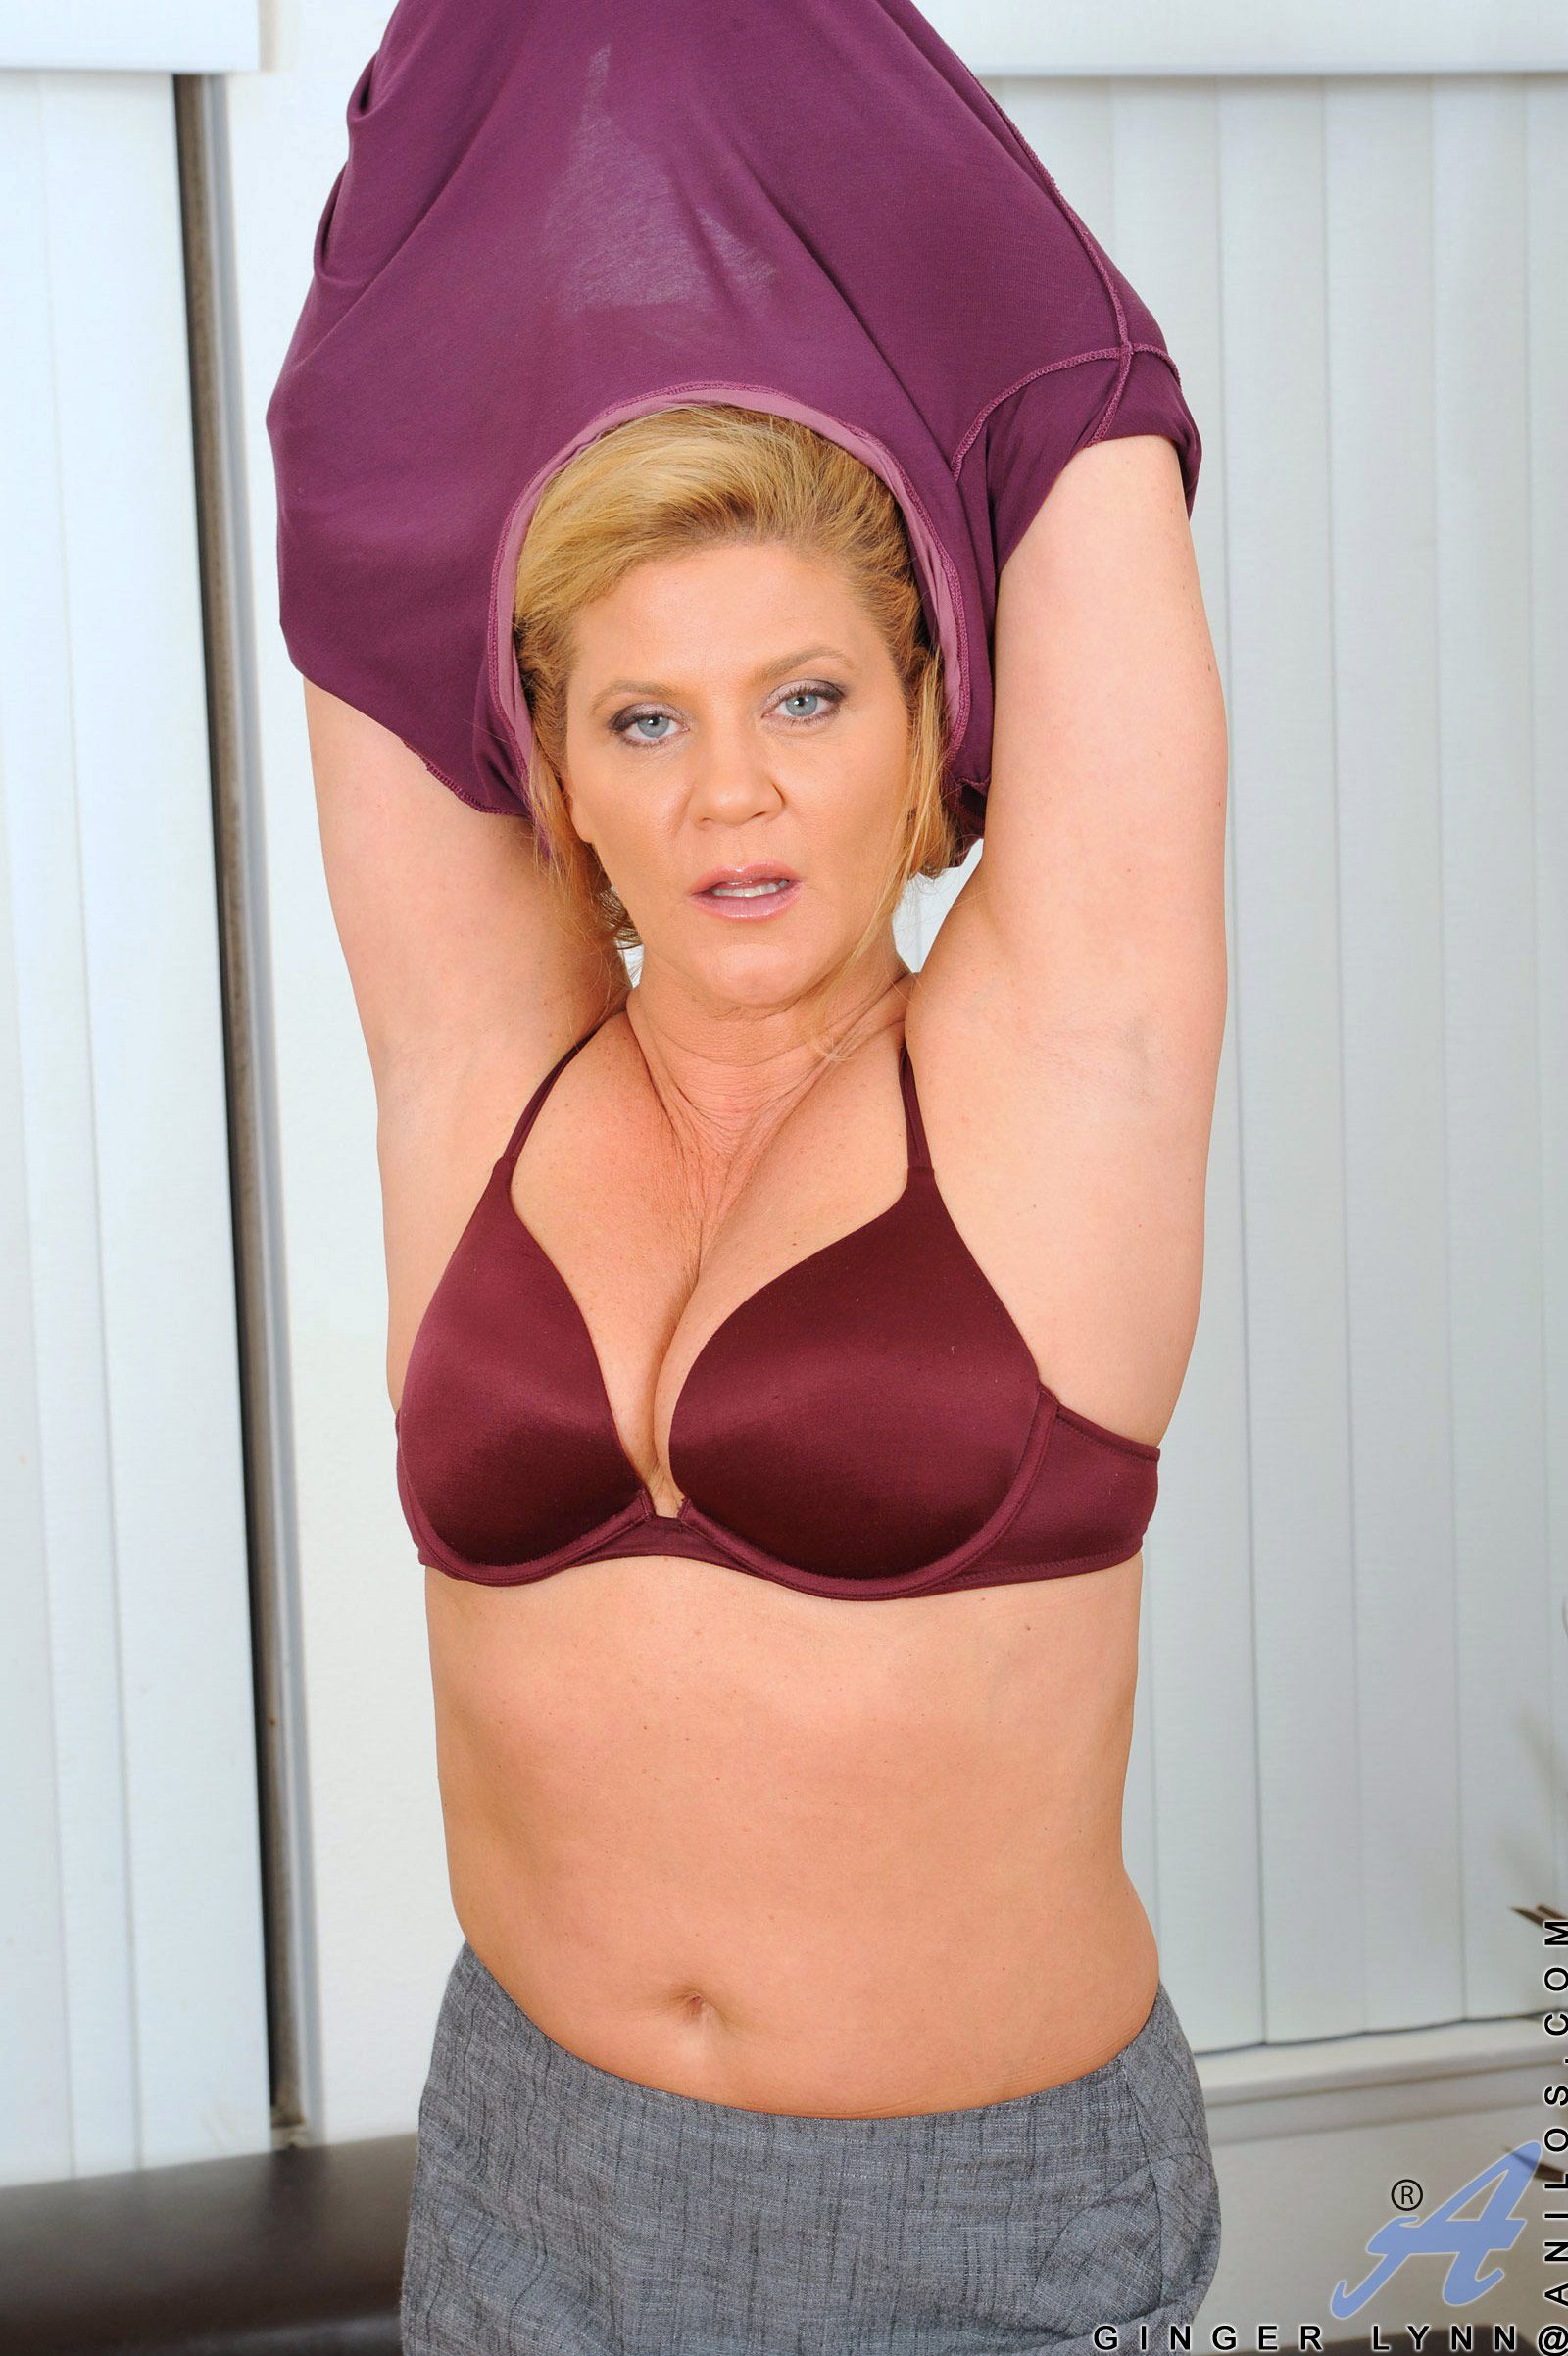 Ginger Lynn New